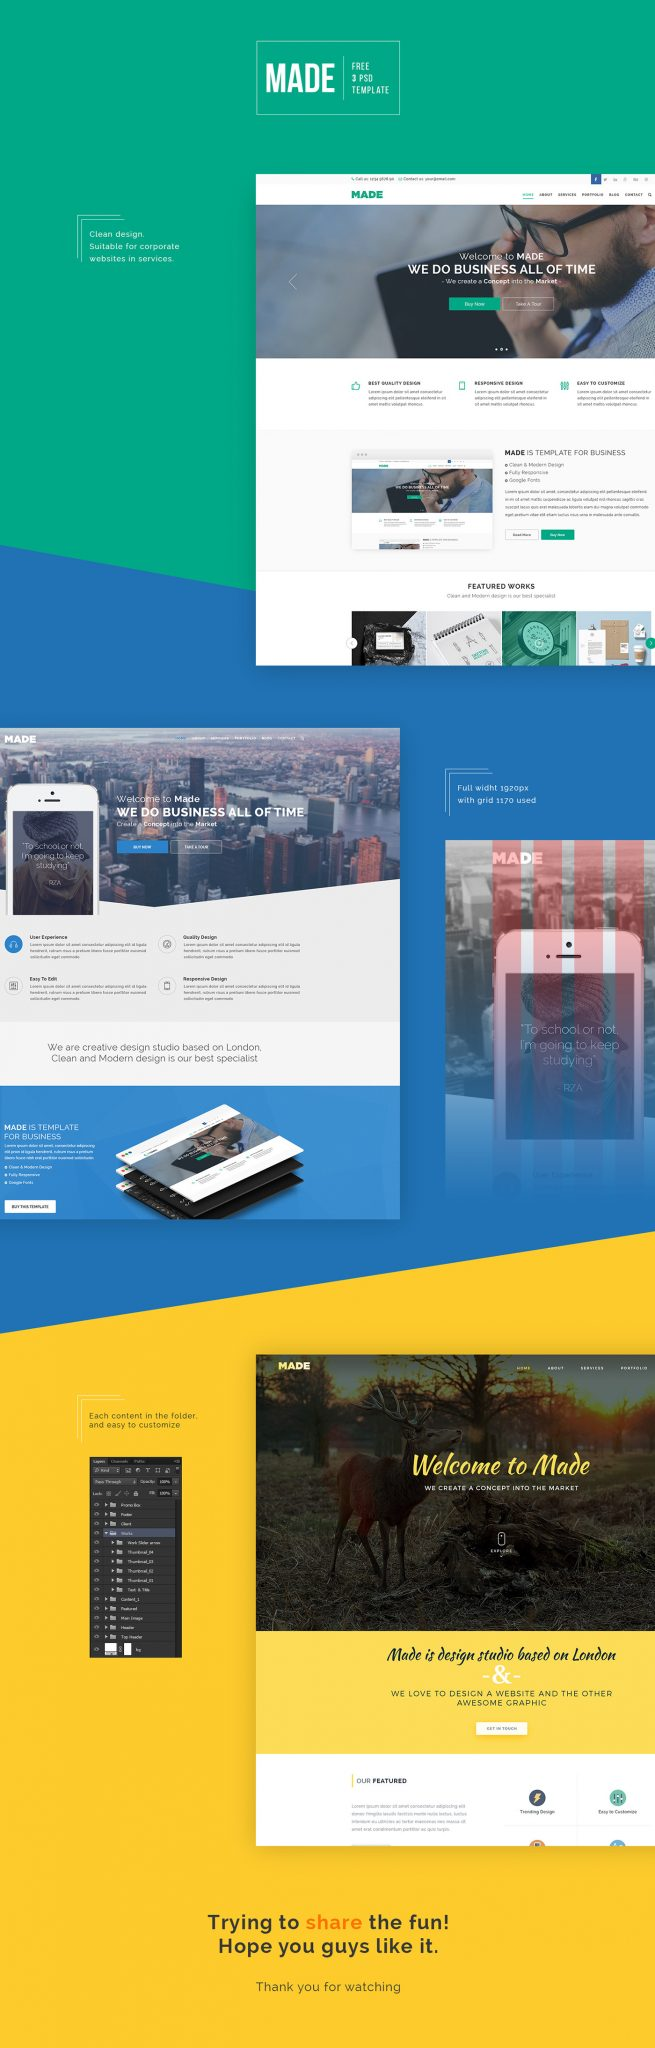 MADE - FREE BUSINESS TEMPLATE